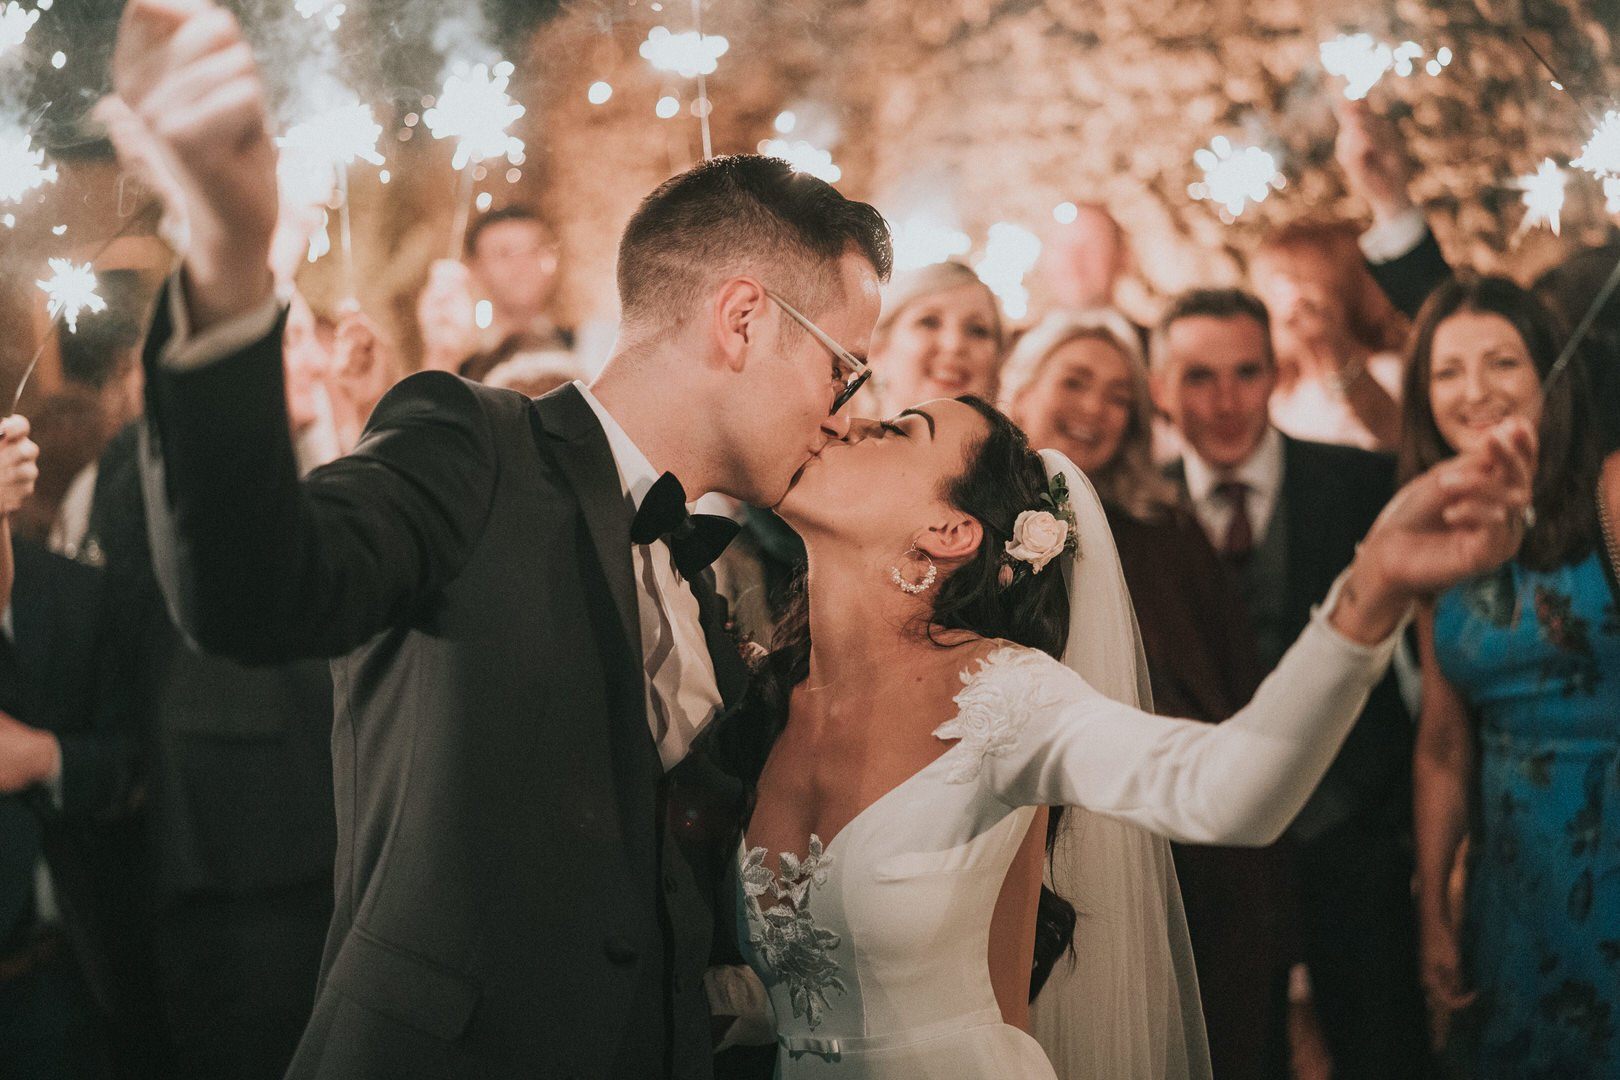 Planning Your Wedding - golden 10 you should be conscious of 4